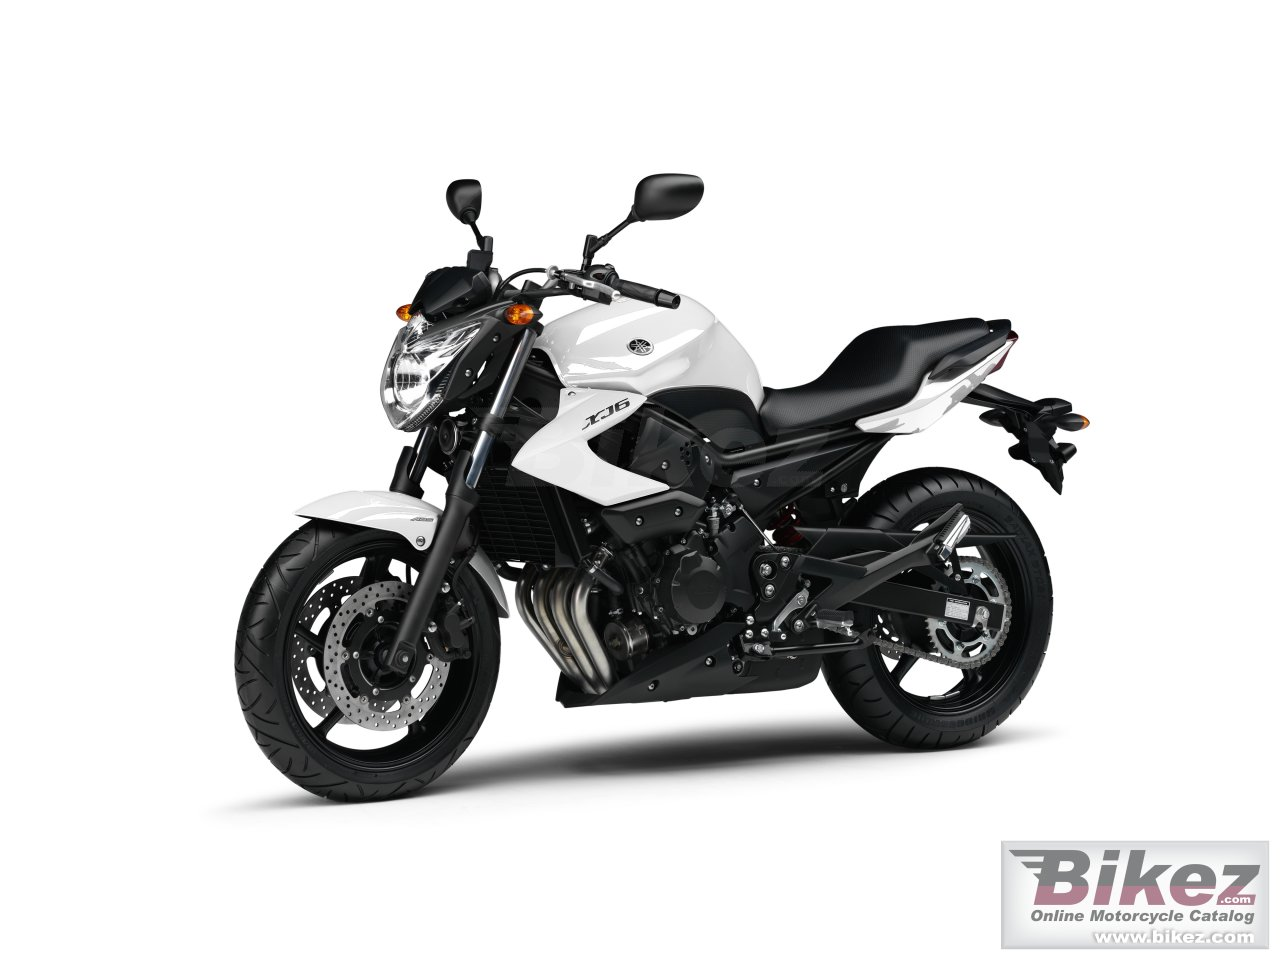 Big Yamaha xj6 picture and wallpaper from Bikez.com